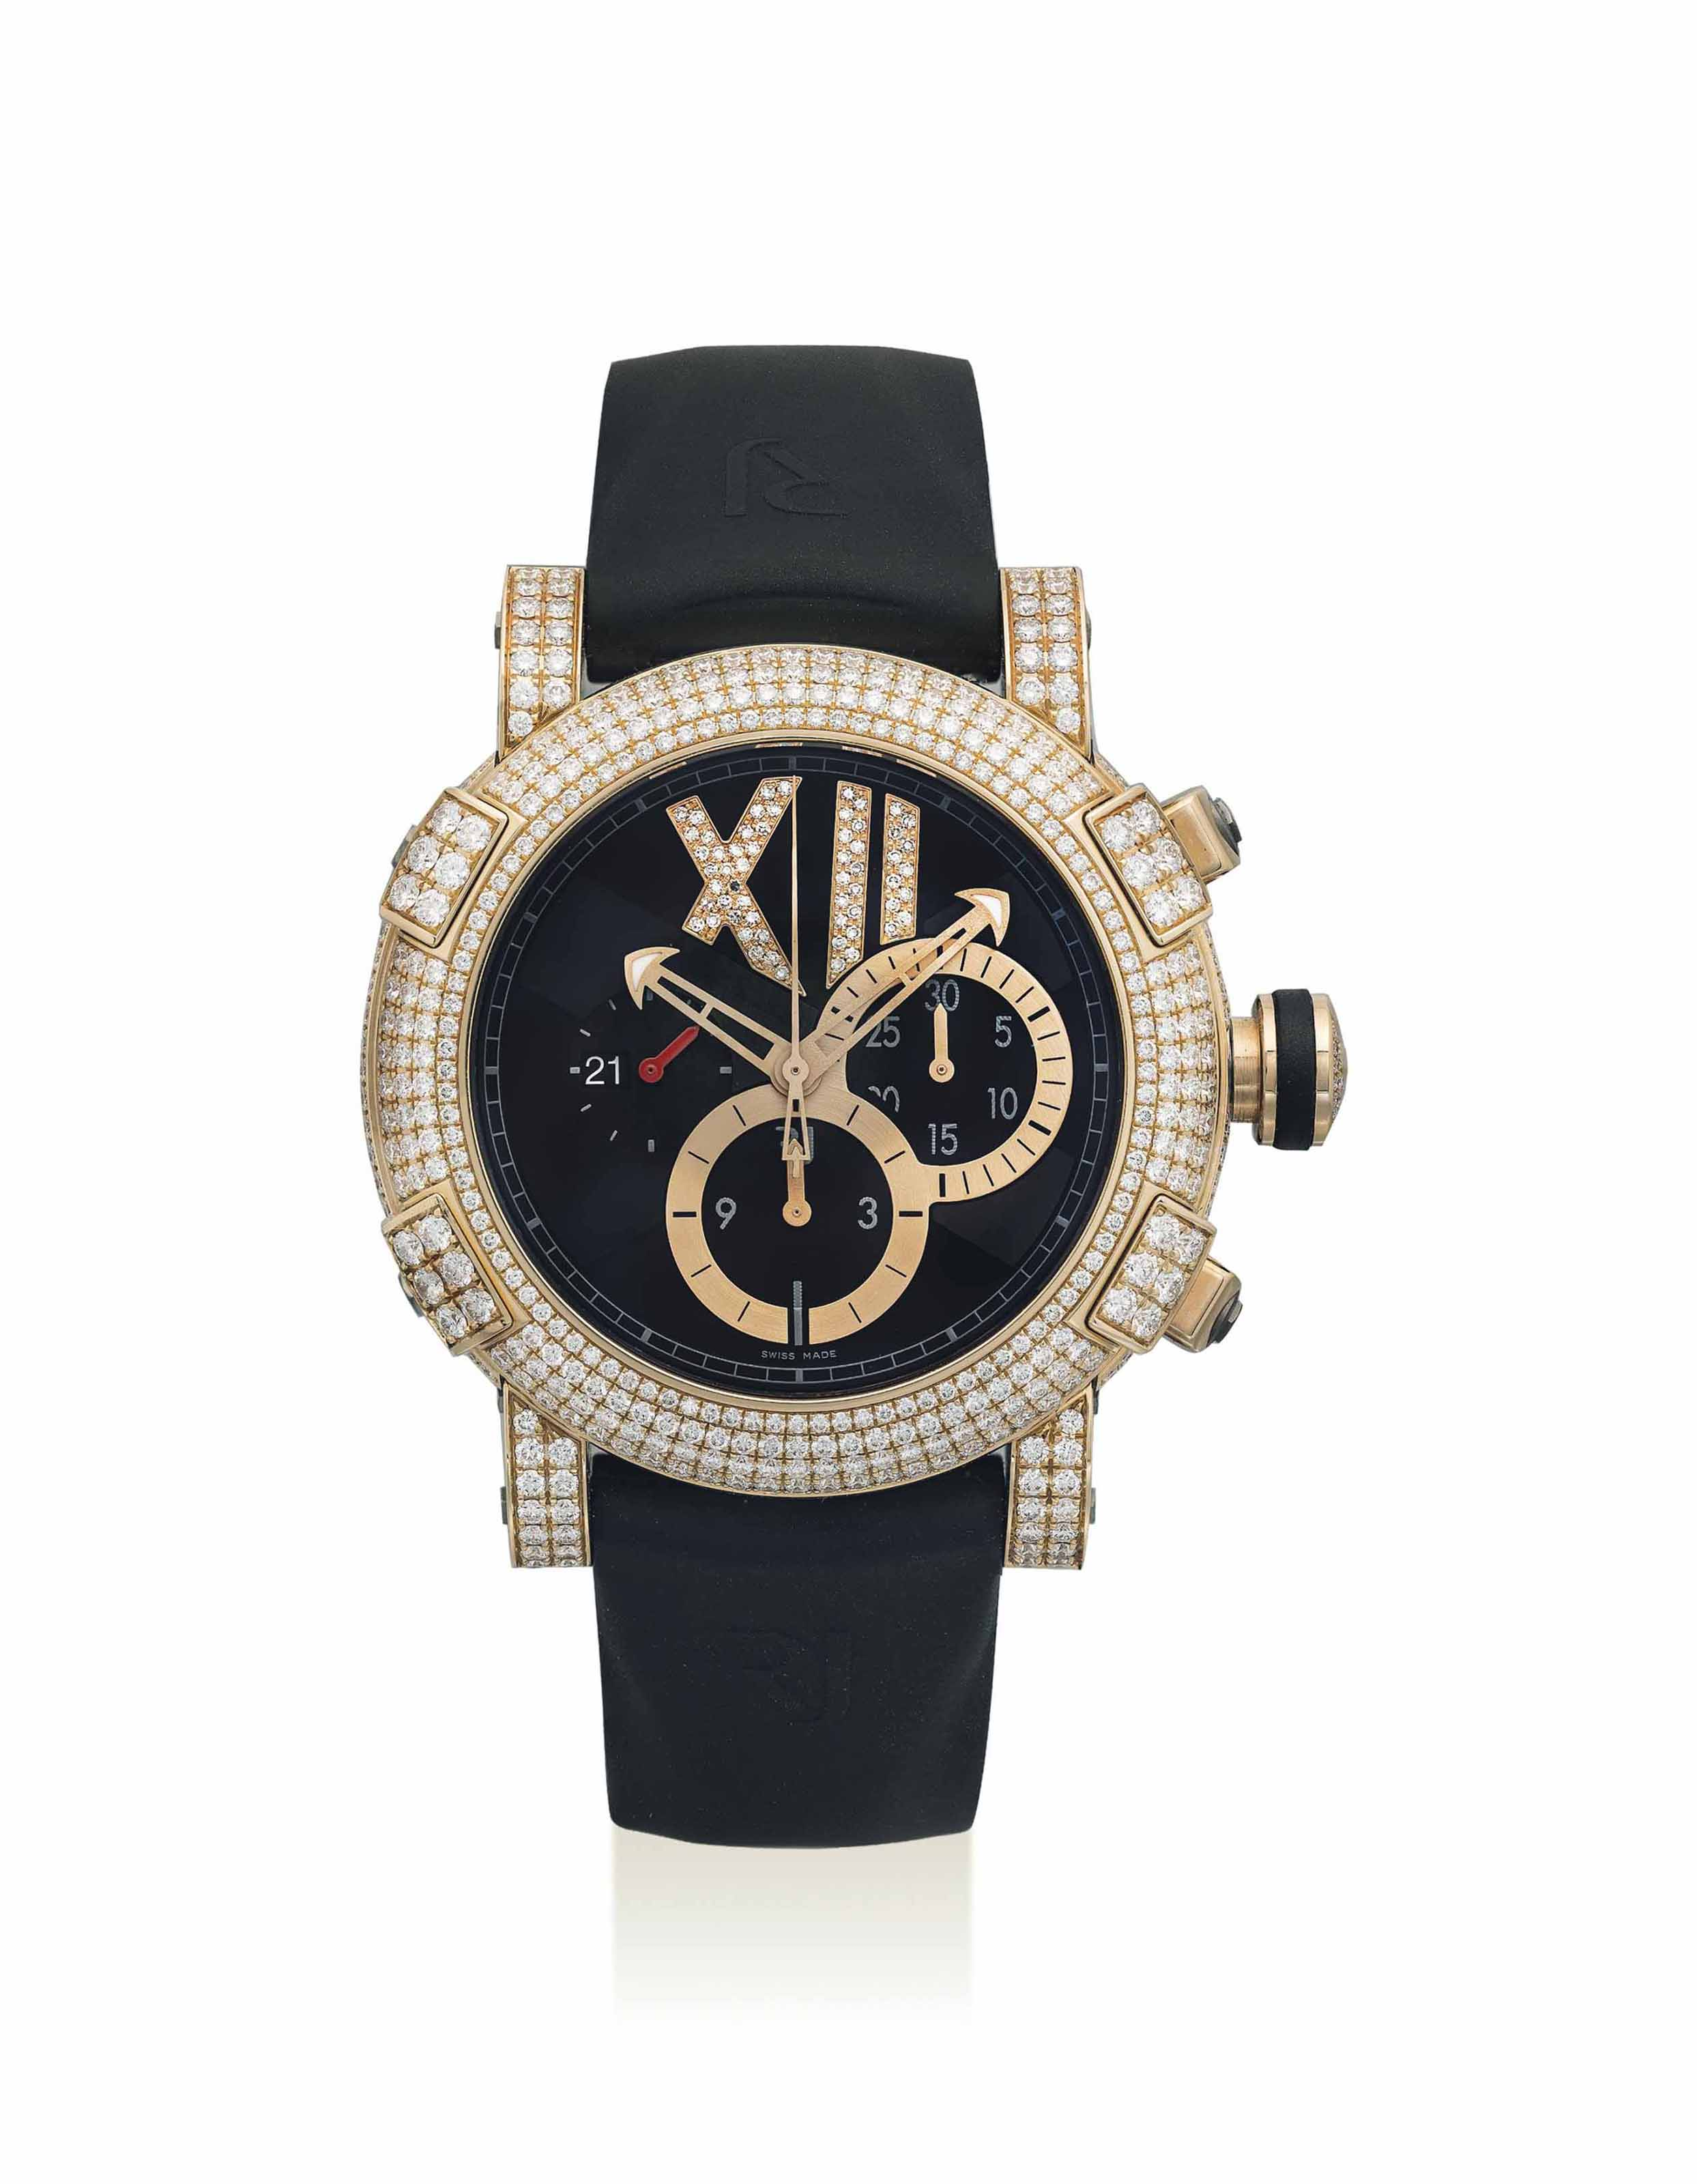 ROMAIN JEROME. A FINE 18K PINK GOLD, TITANIUM, STAINLESS STEEL AND DIAMOND-SET AUTOMATIC CHRONOGRAPH WRISTWATCH WITH DATE, MADE WITH PARTS OF THE TITANIC